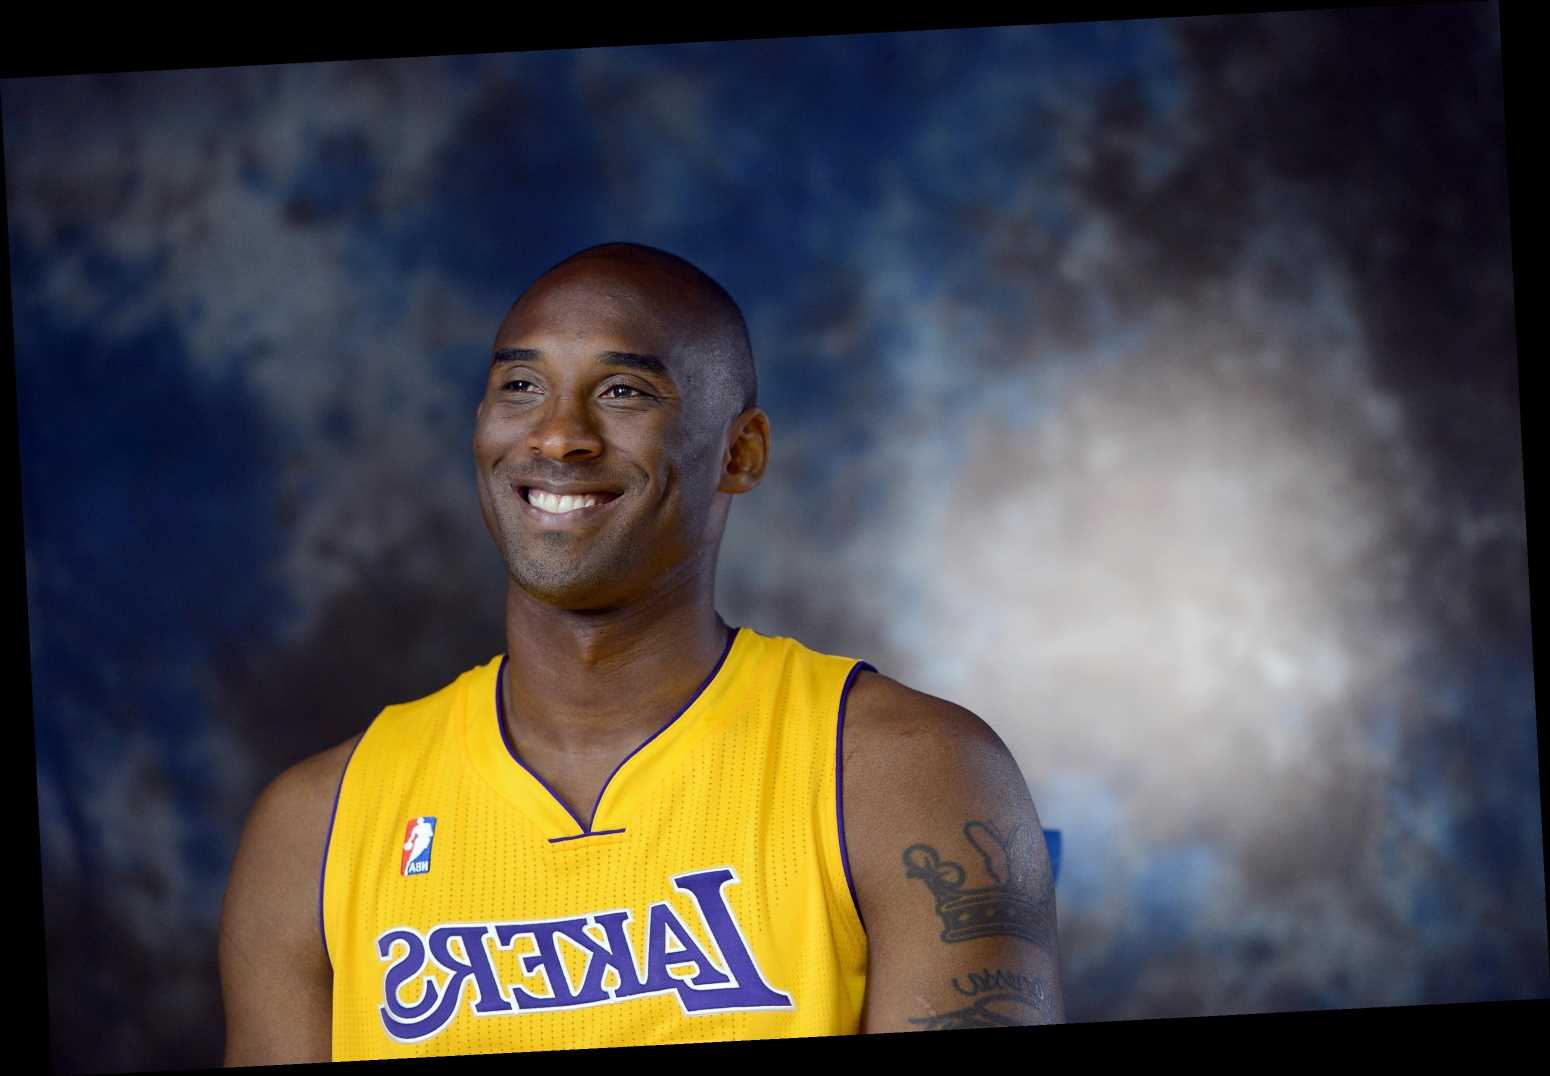 LA cop Joey Cruz 'showed harrowing pics of Kobe Bryant chopper crash to his NIECE and made joke about their remains'